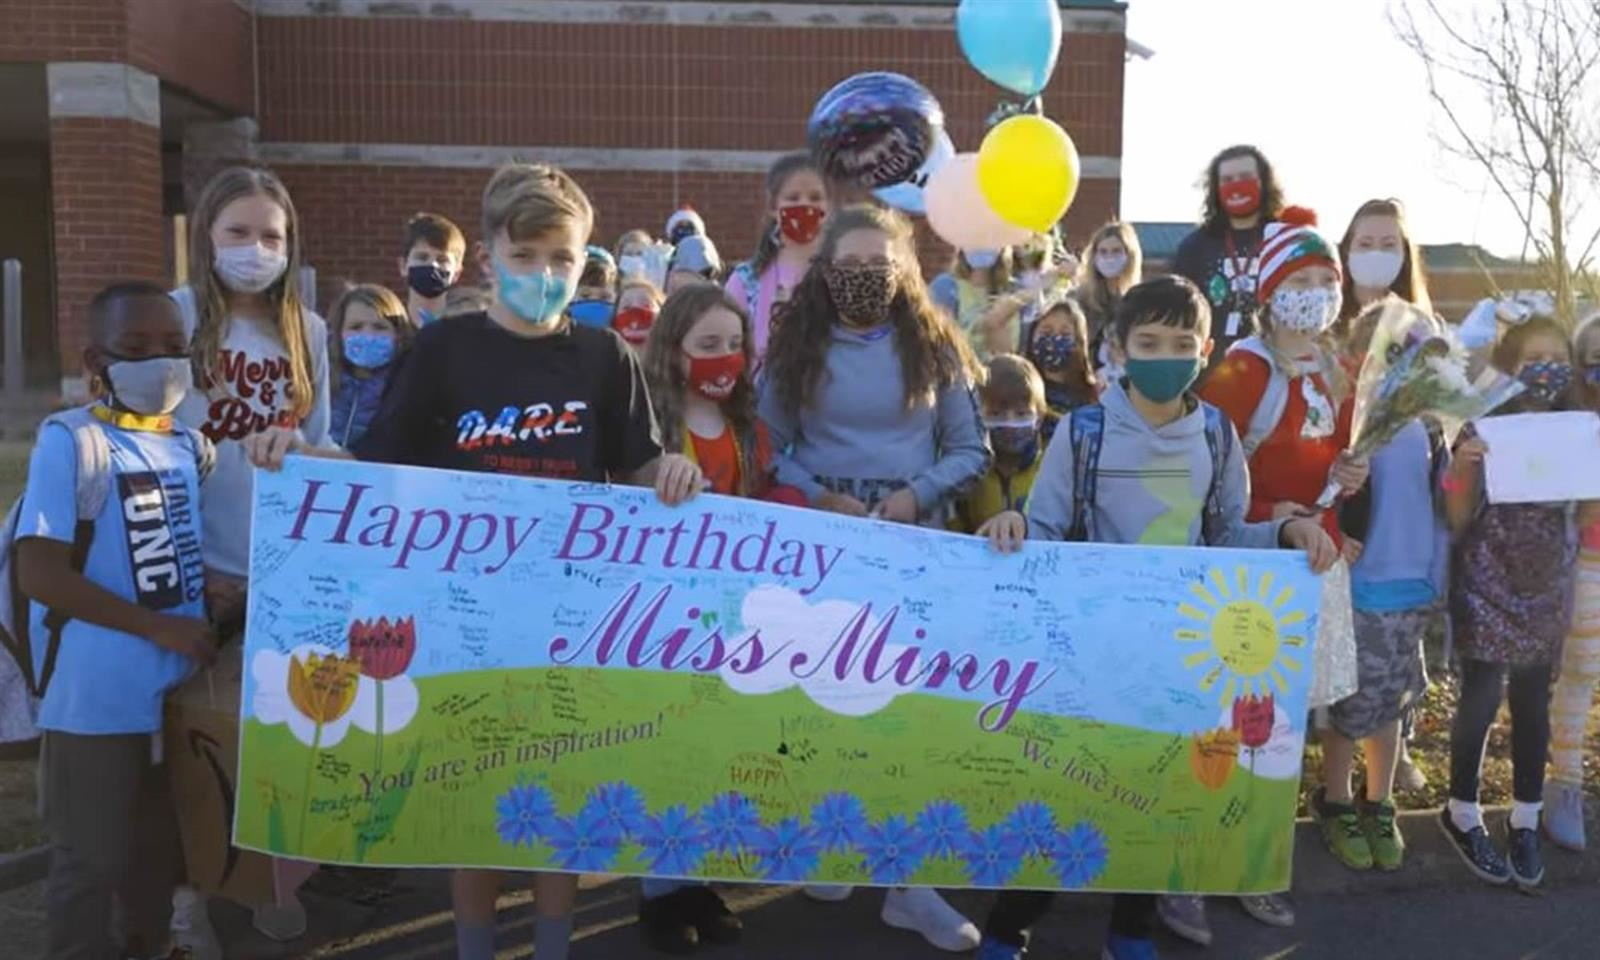 Students hold birthday signs